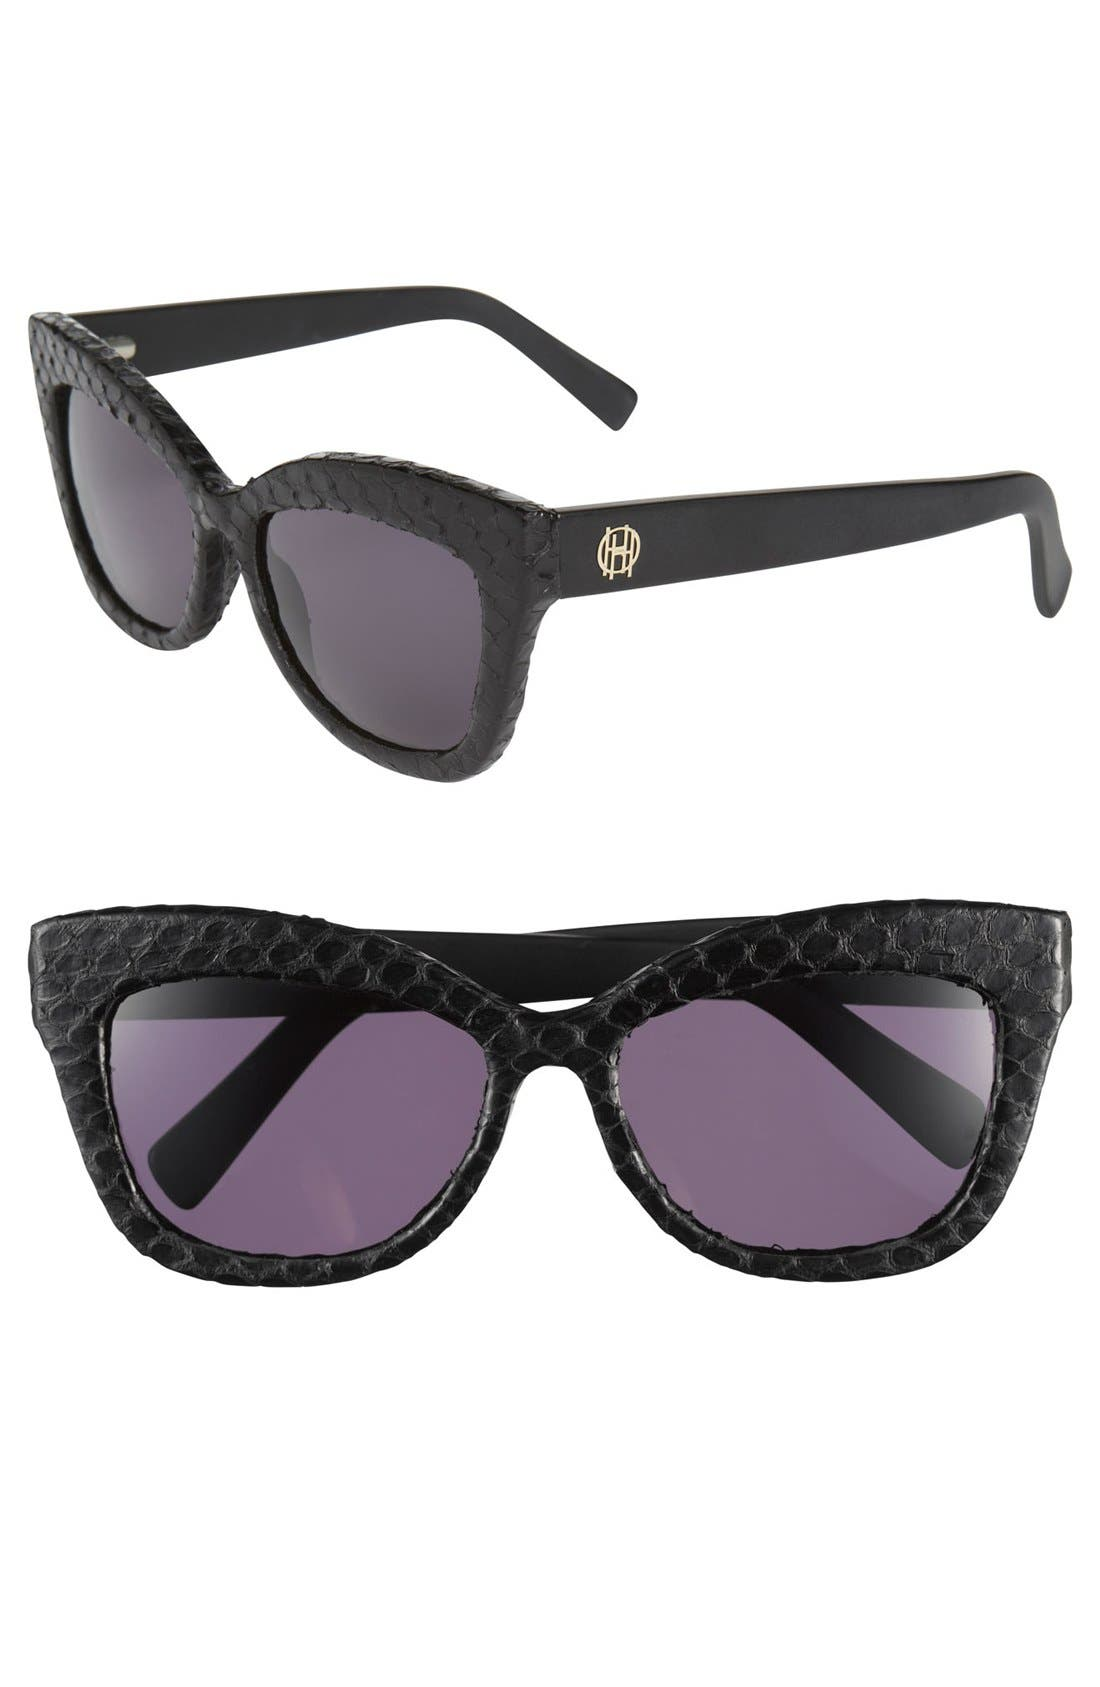 Main Image - House of Harlow 1960 'Linsey' 56mm Genuine Python Sunglasses